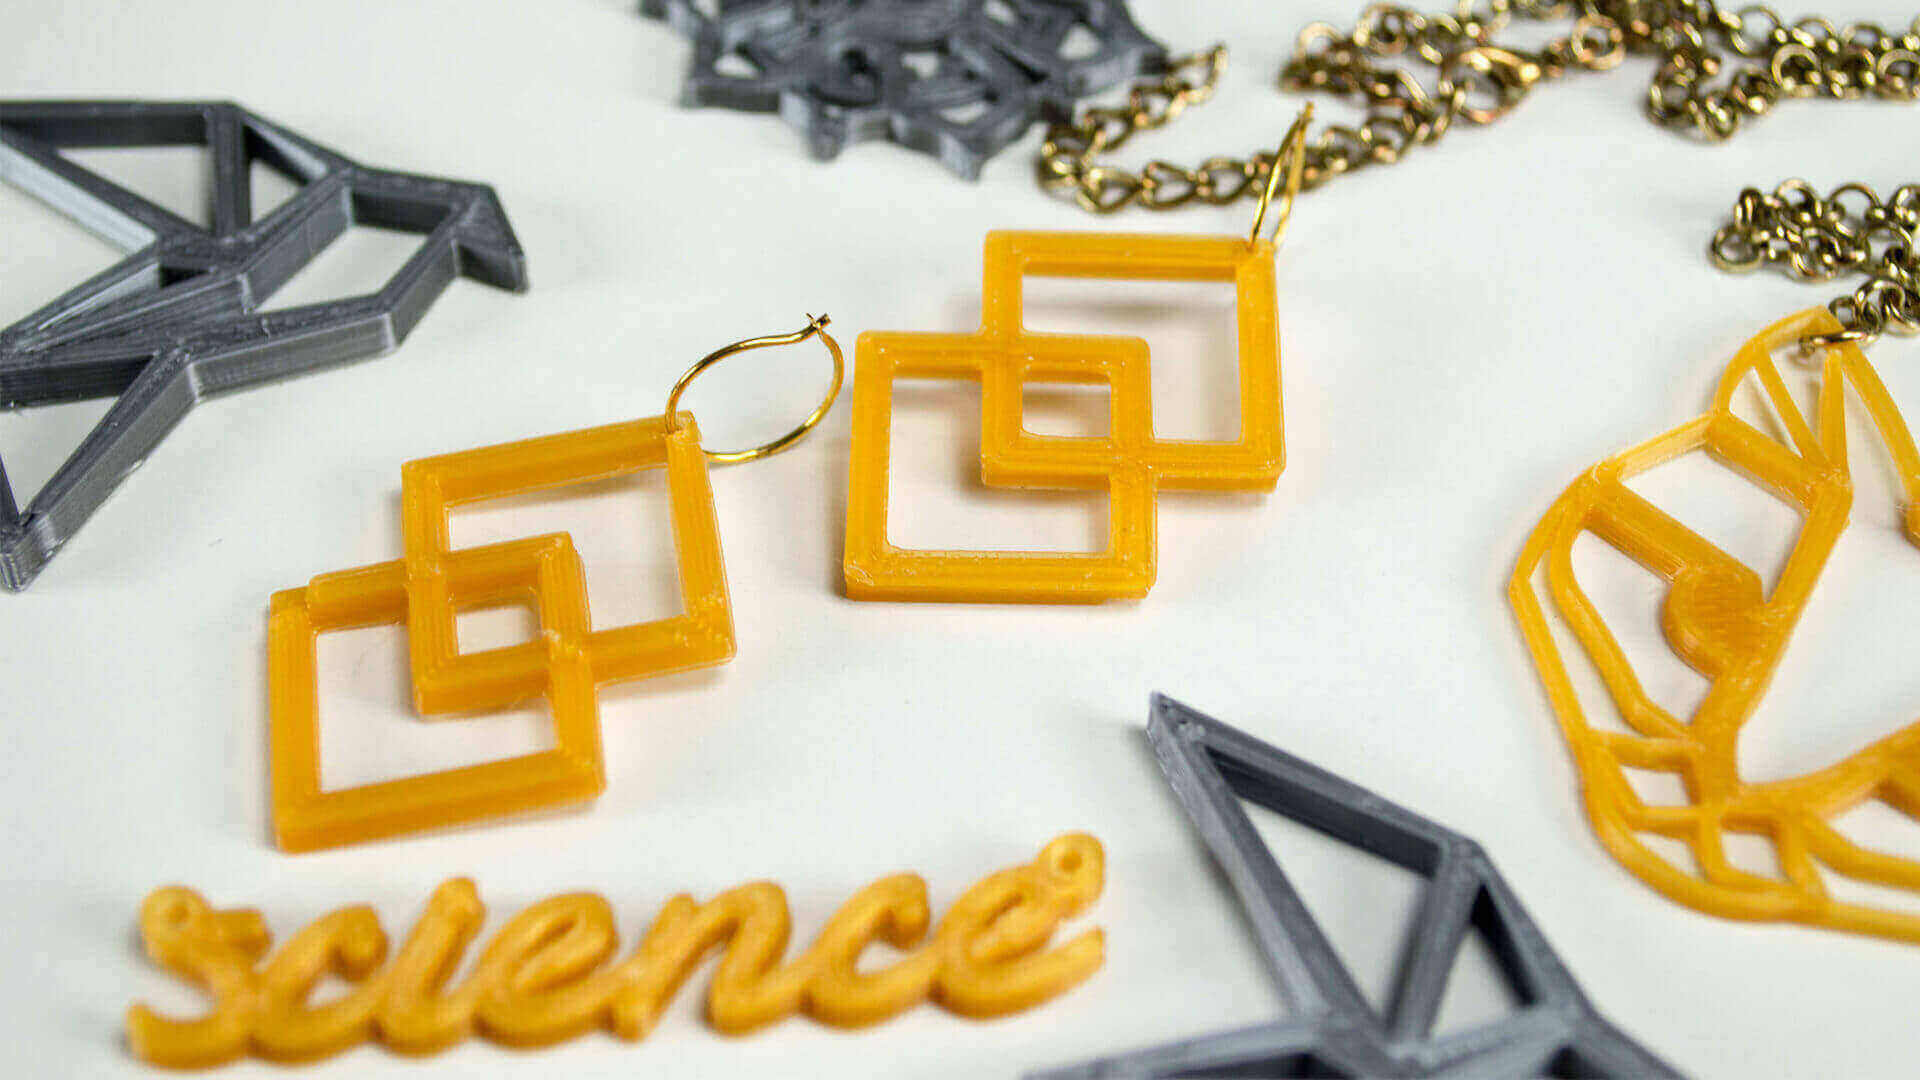 20 Best 3D Printed Necklaces and 3D Printed Earrings | All3DP